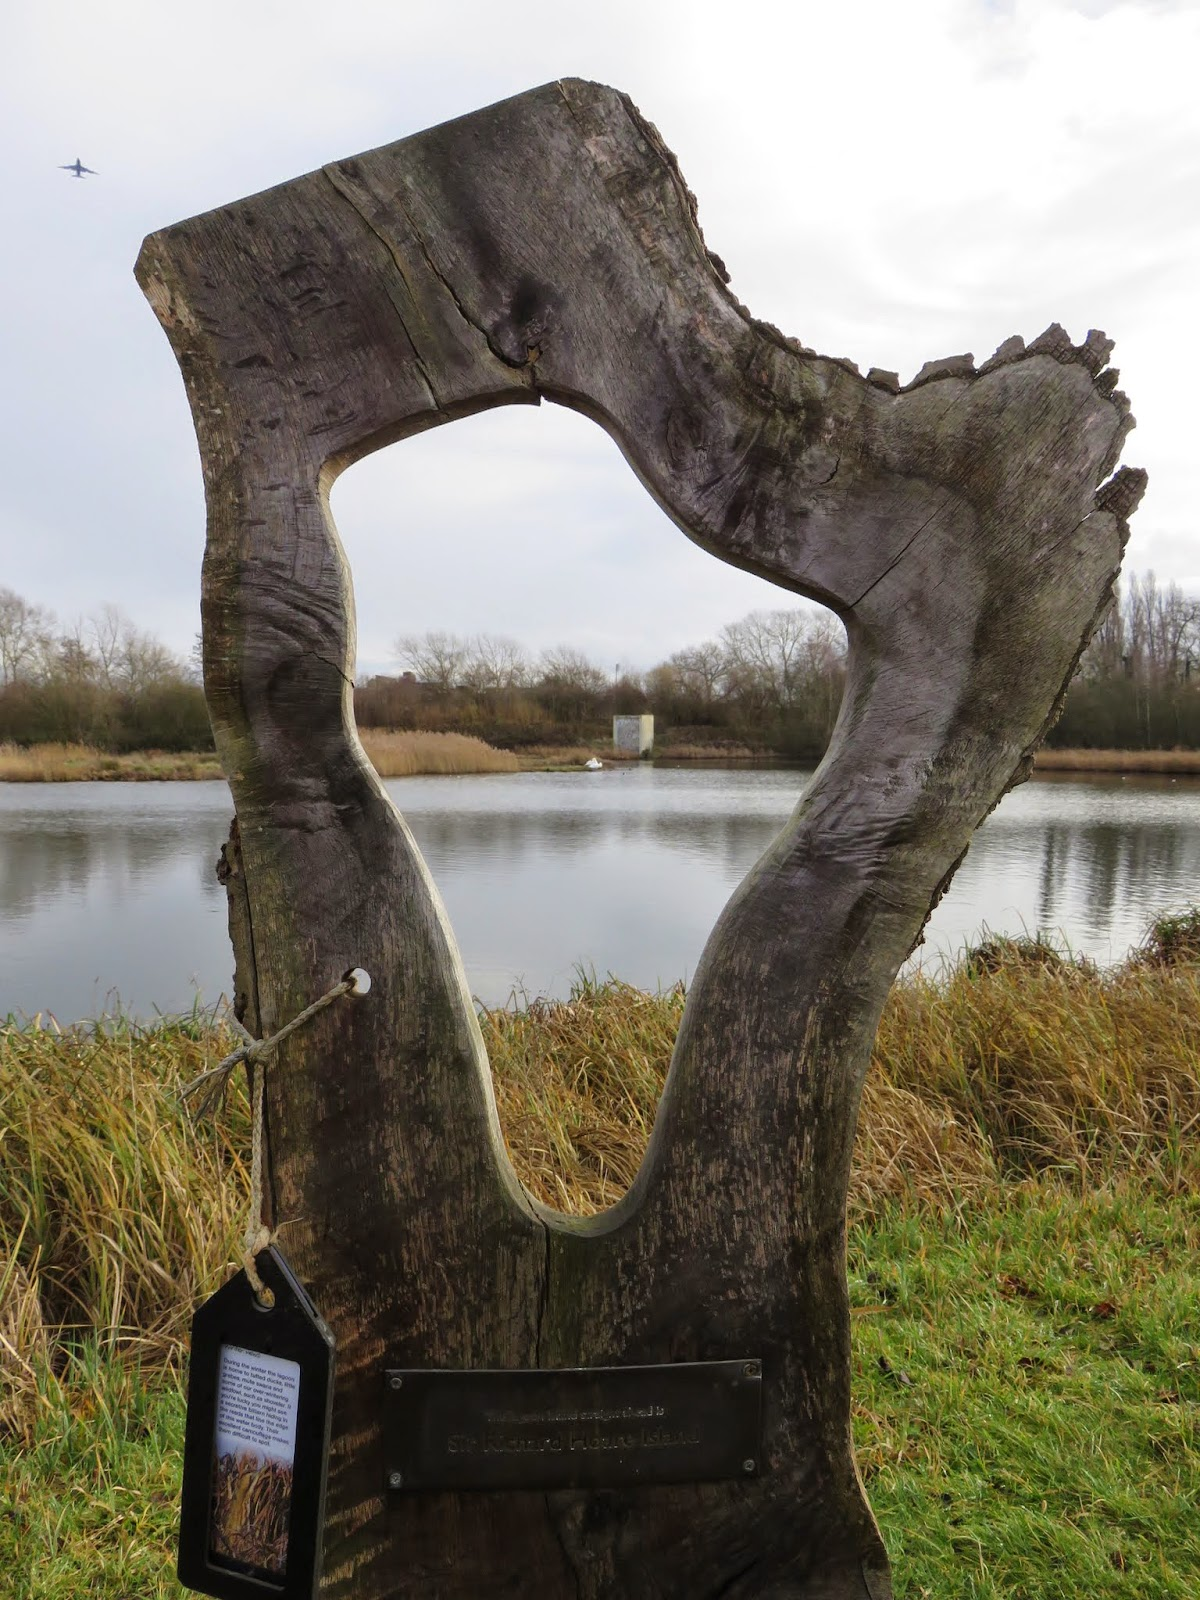 Sculpture at the Wildfowl and Wetland Trust London Sanctuary